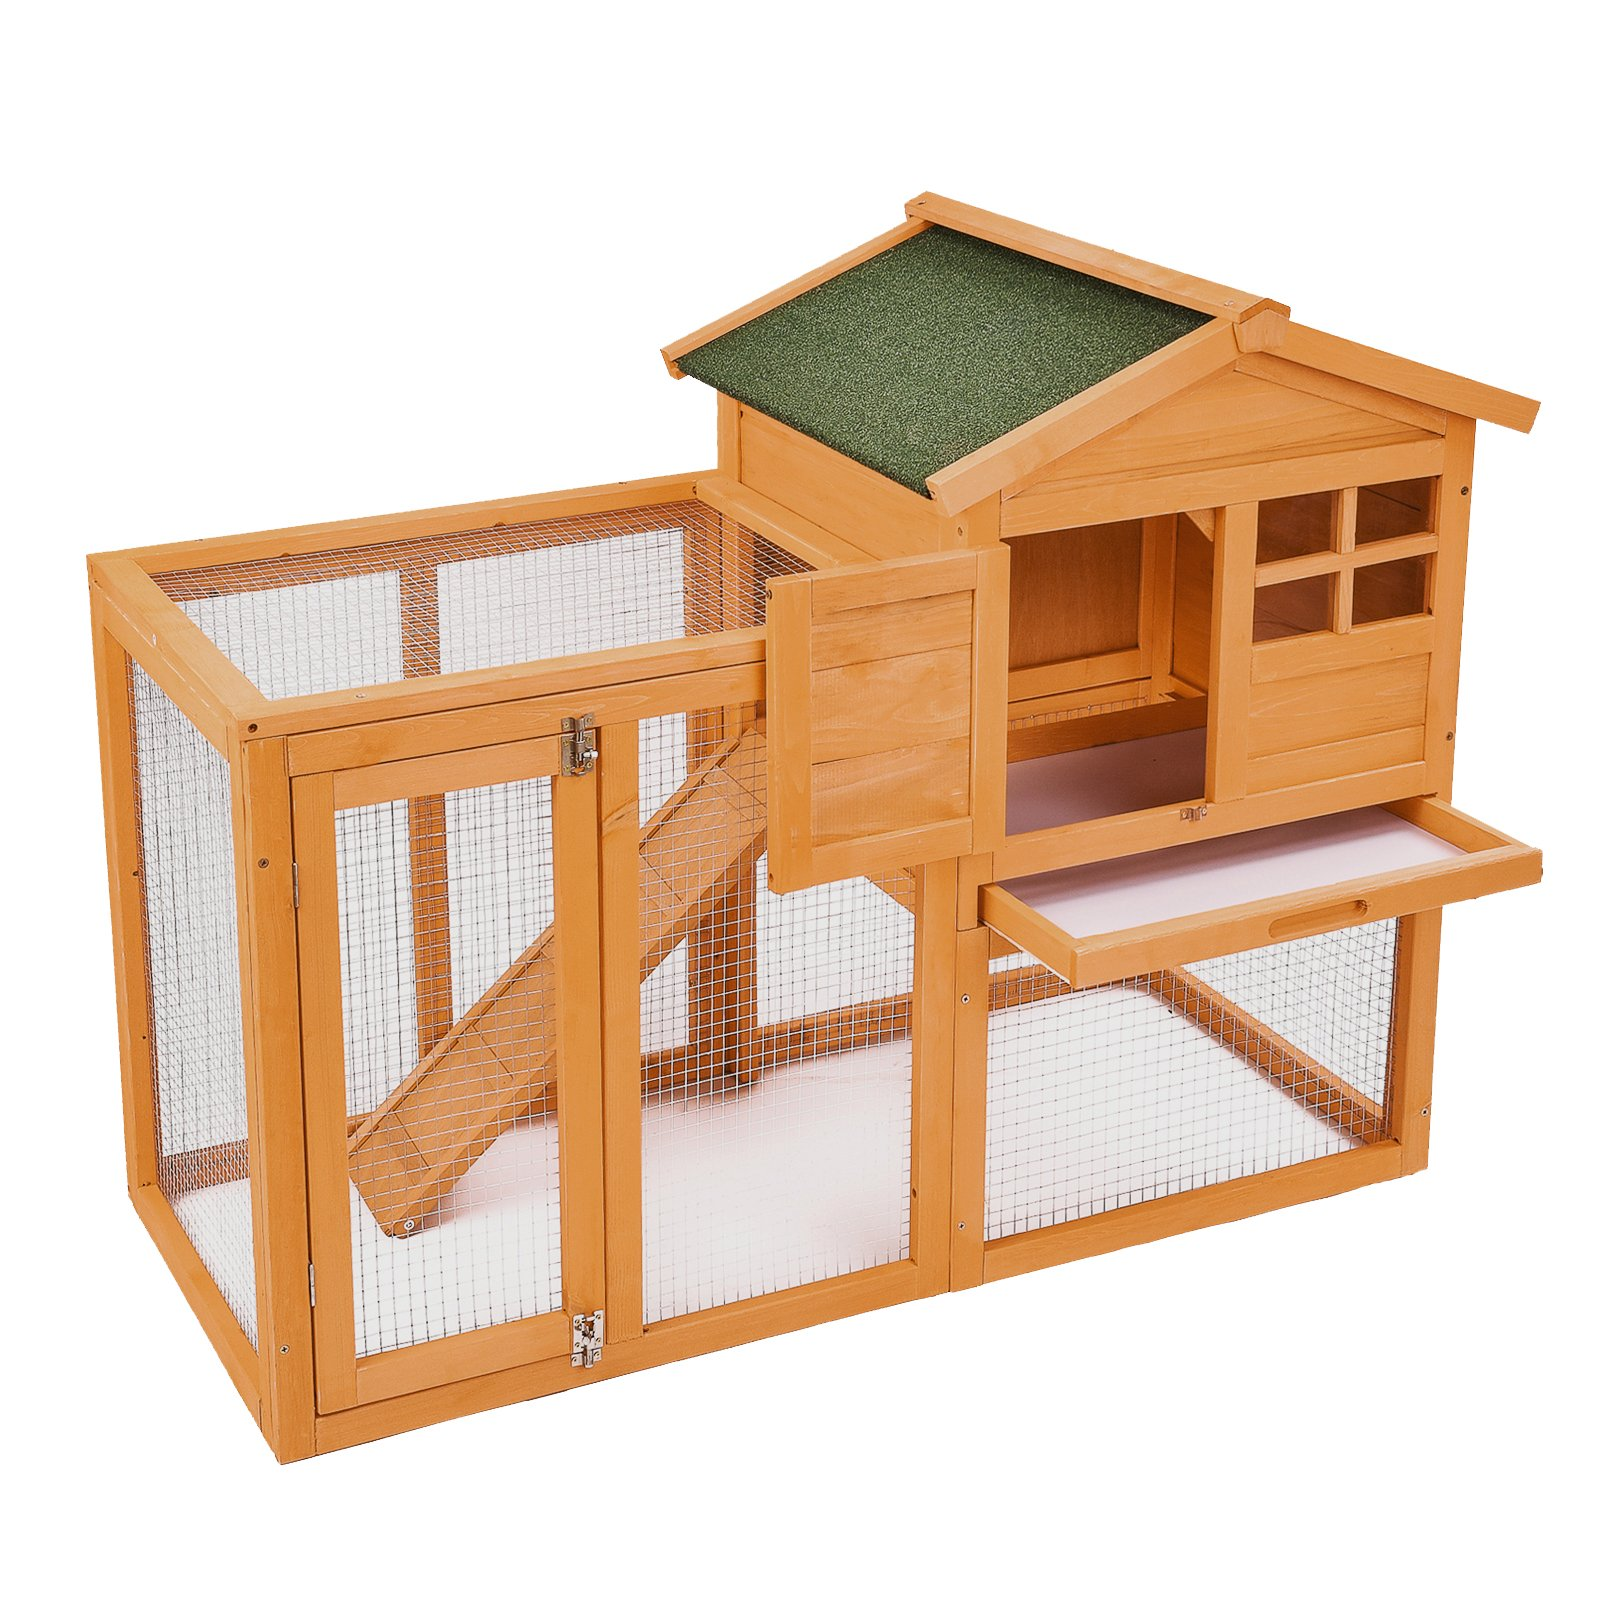 SUNCOO Wooden 2 Stairs Rabbit Hutch Chicken Coop Bunny Dog Animal Outdoor Cage with Water-resistant Roof